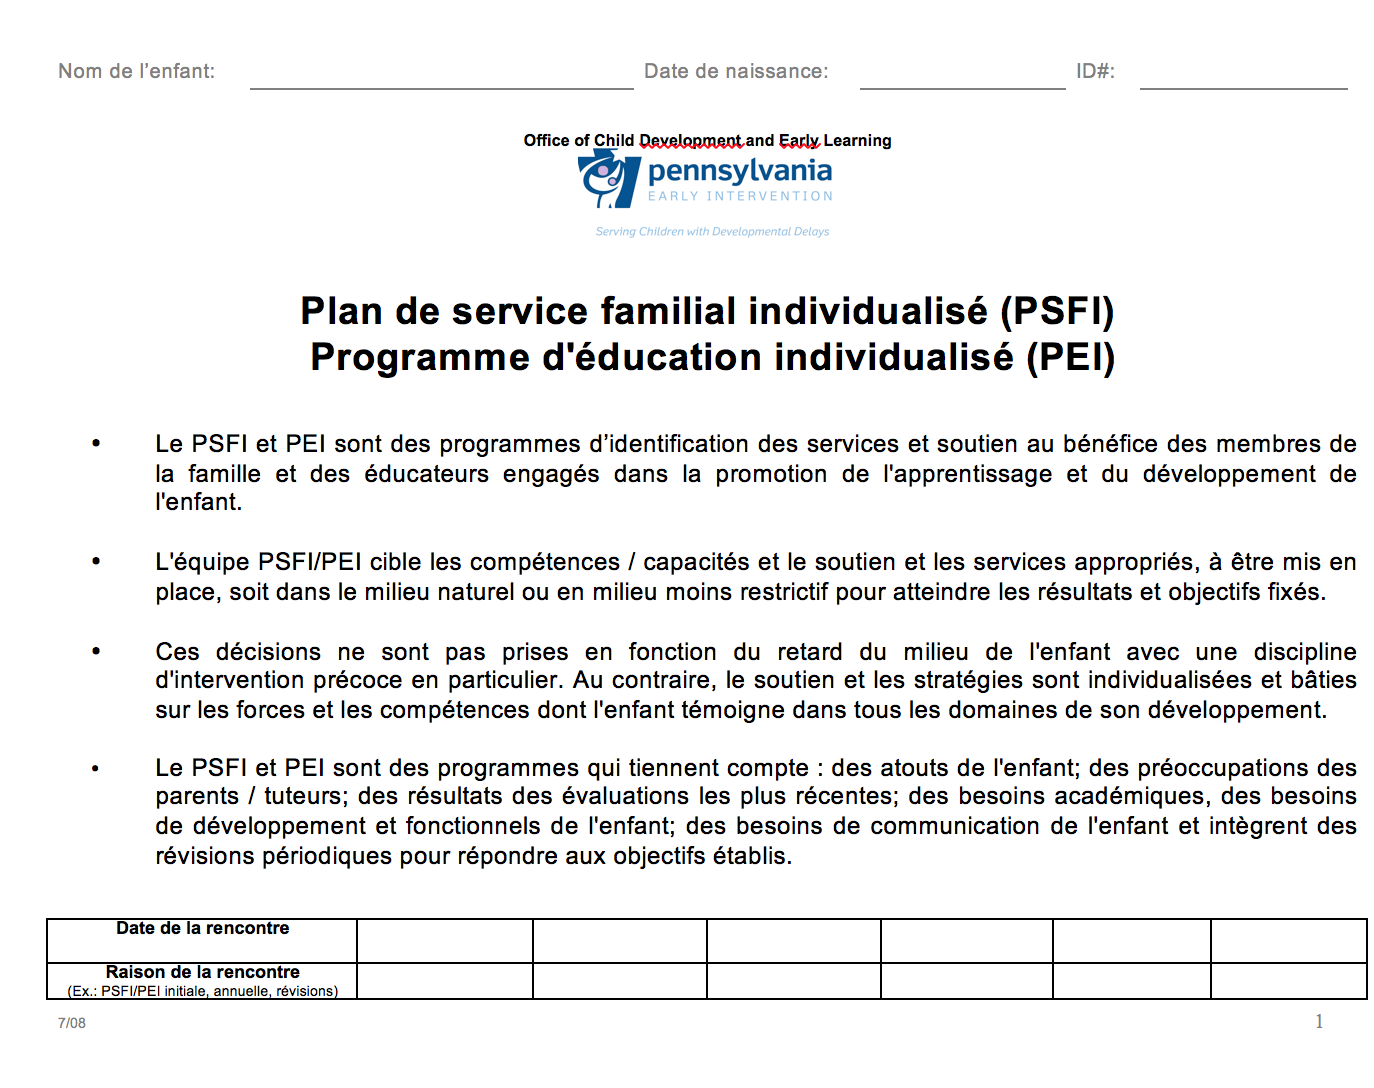 Individualized Family Service Plan/Individualized Education Program (IFSP/IEP) - Early Intervention French Version